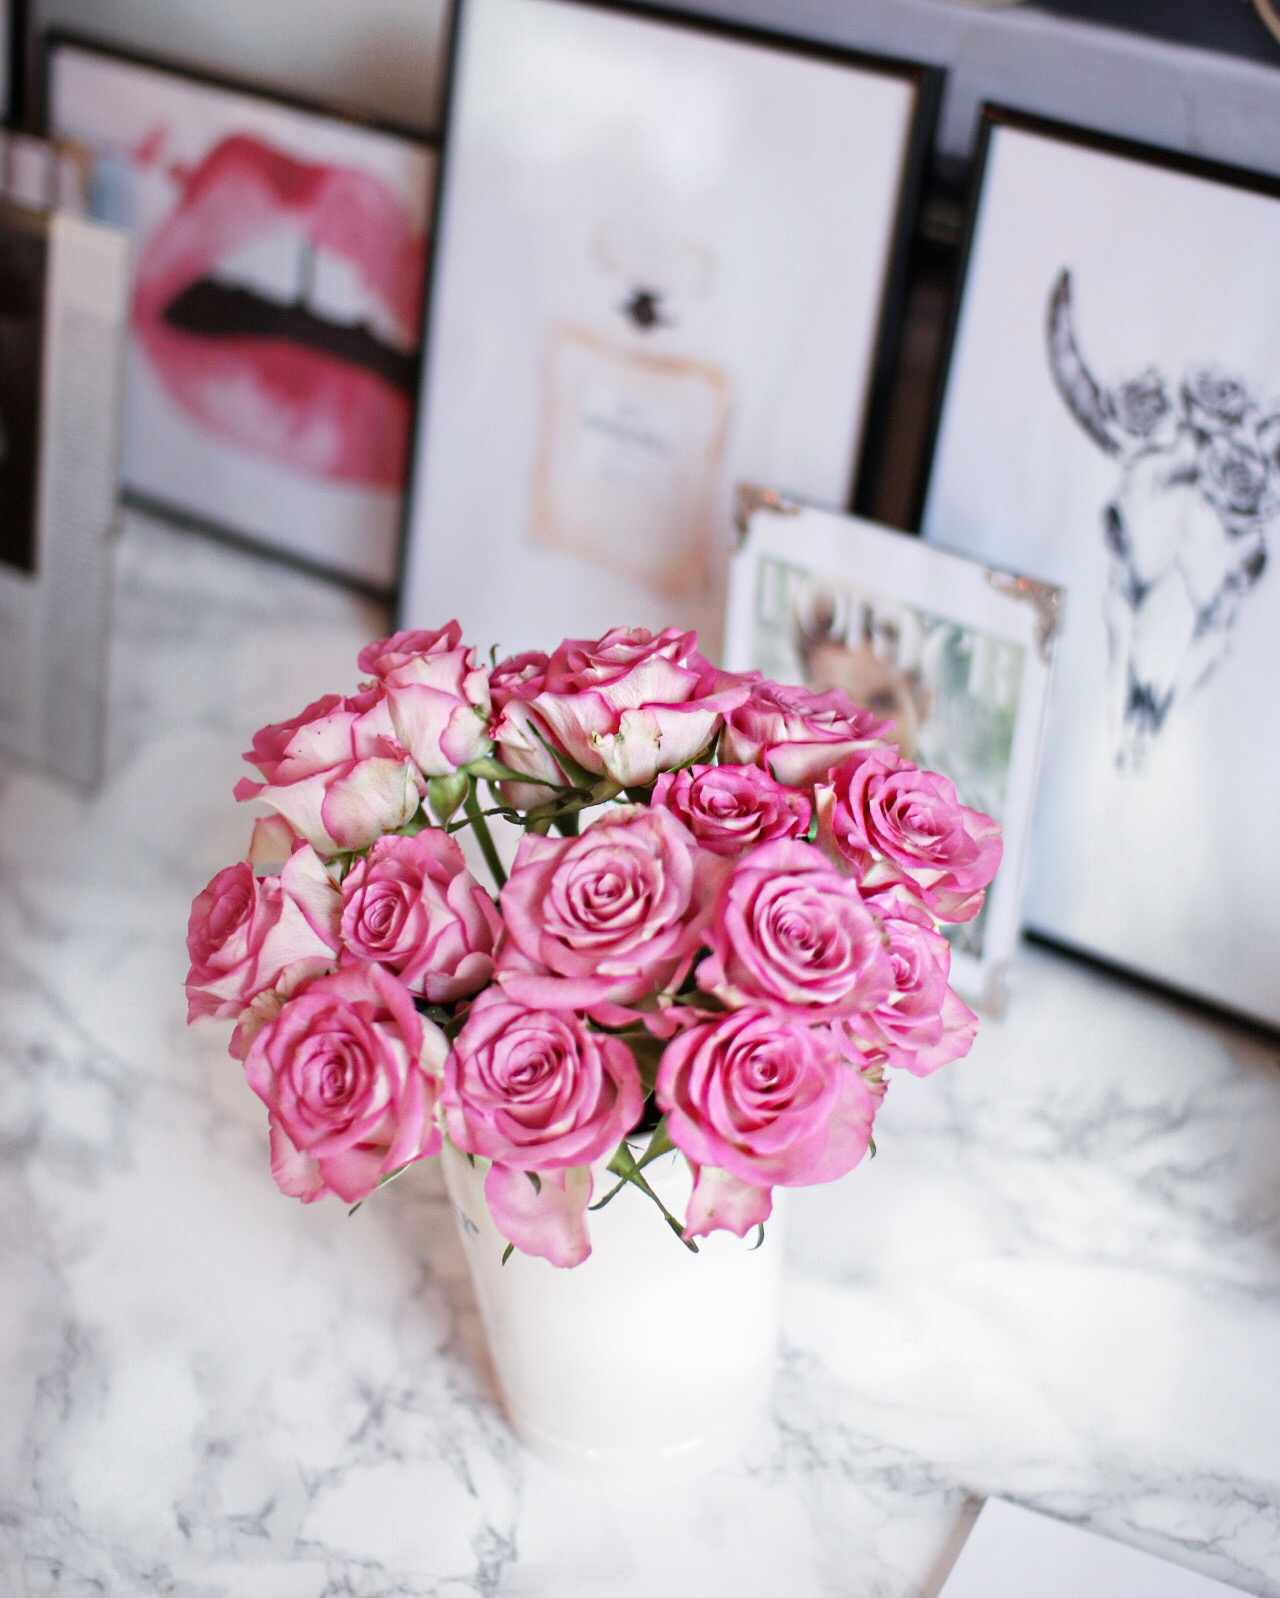 blush and pink bouquet of gorgeous roses in bloom